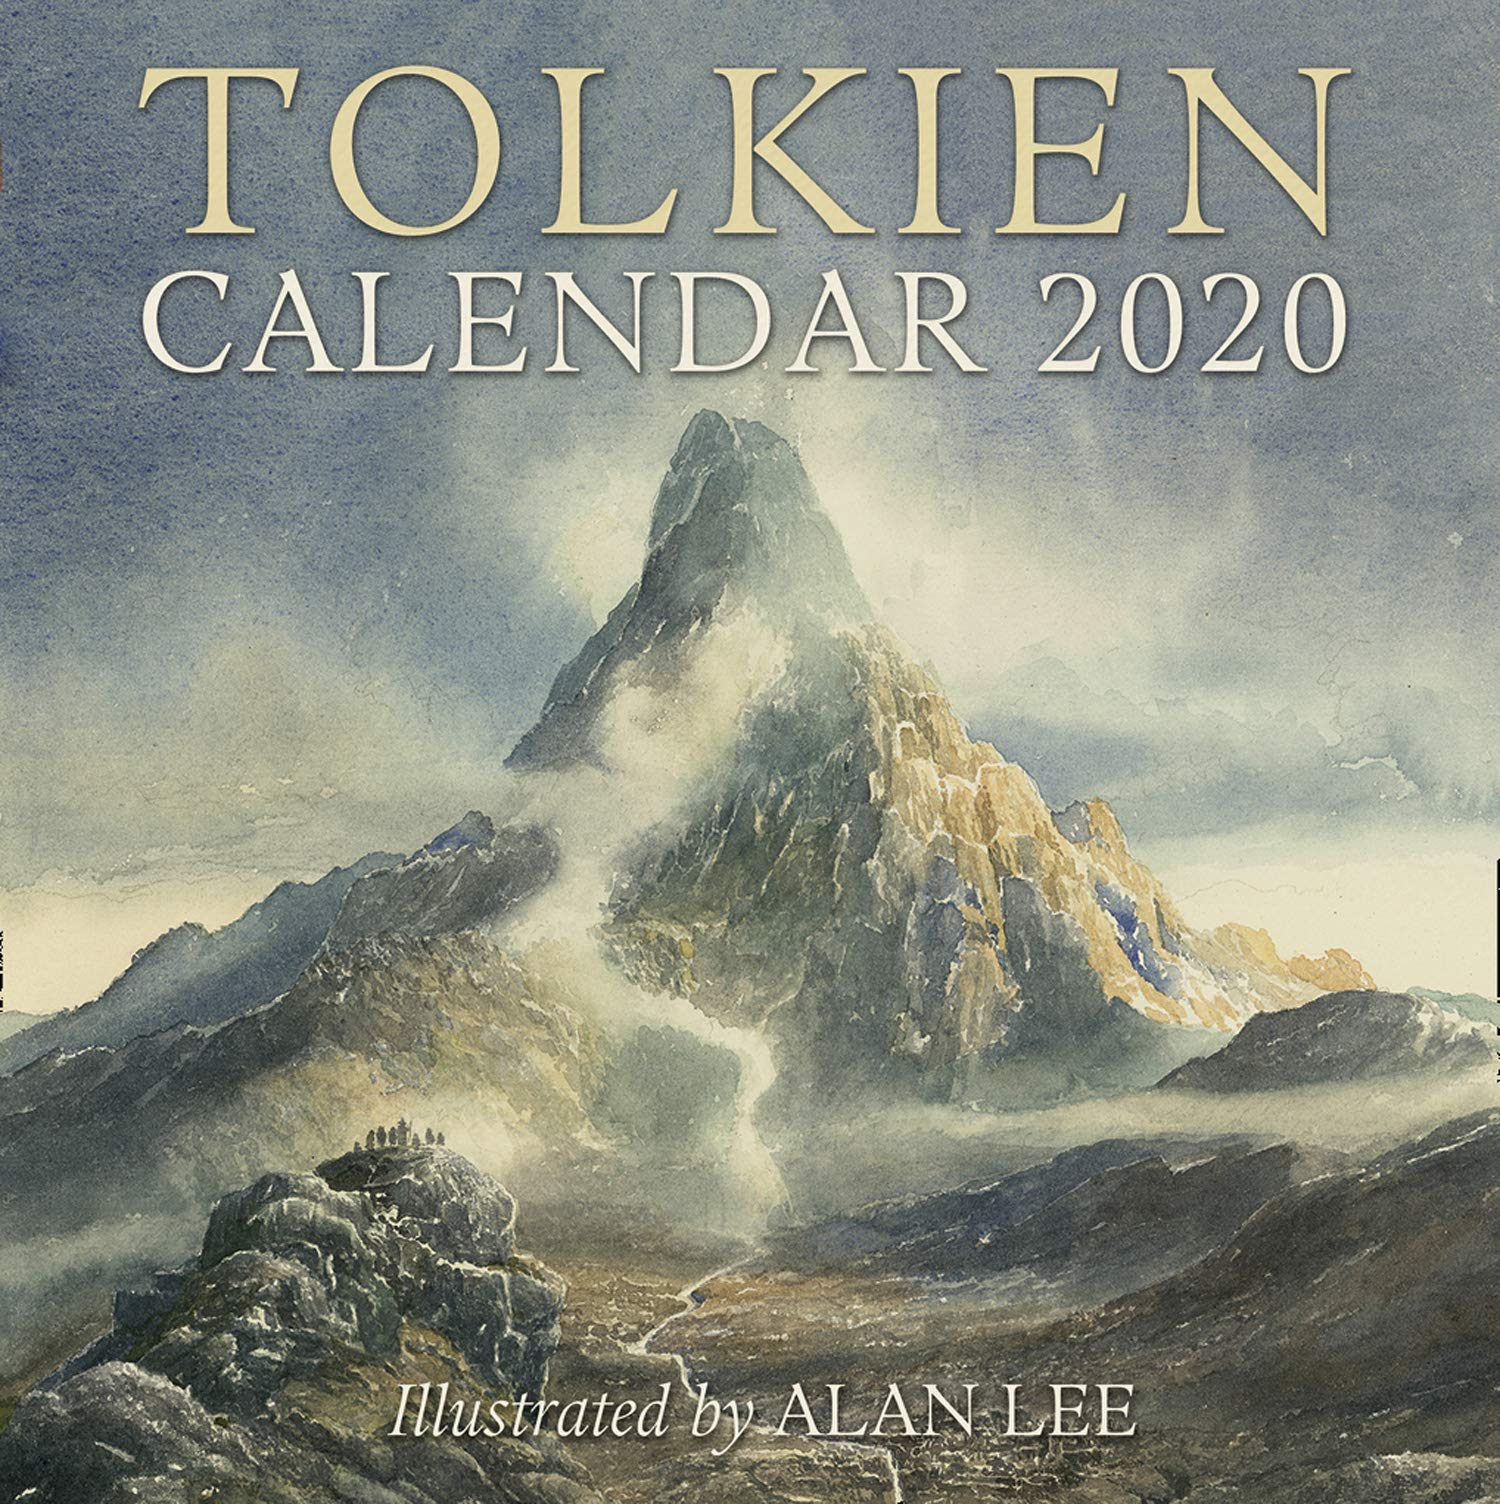 Can Calendrier 2020.Tolkien Calendar 2020 Is Published The Tolkien Society